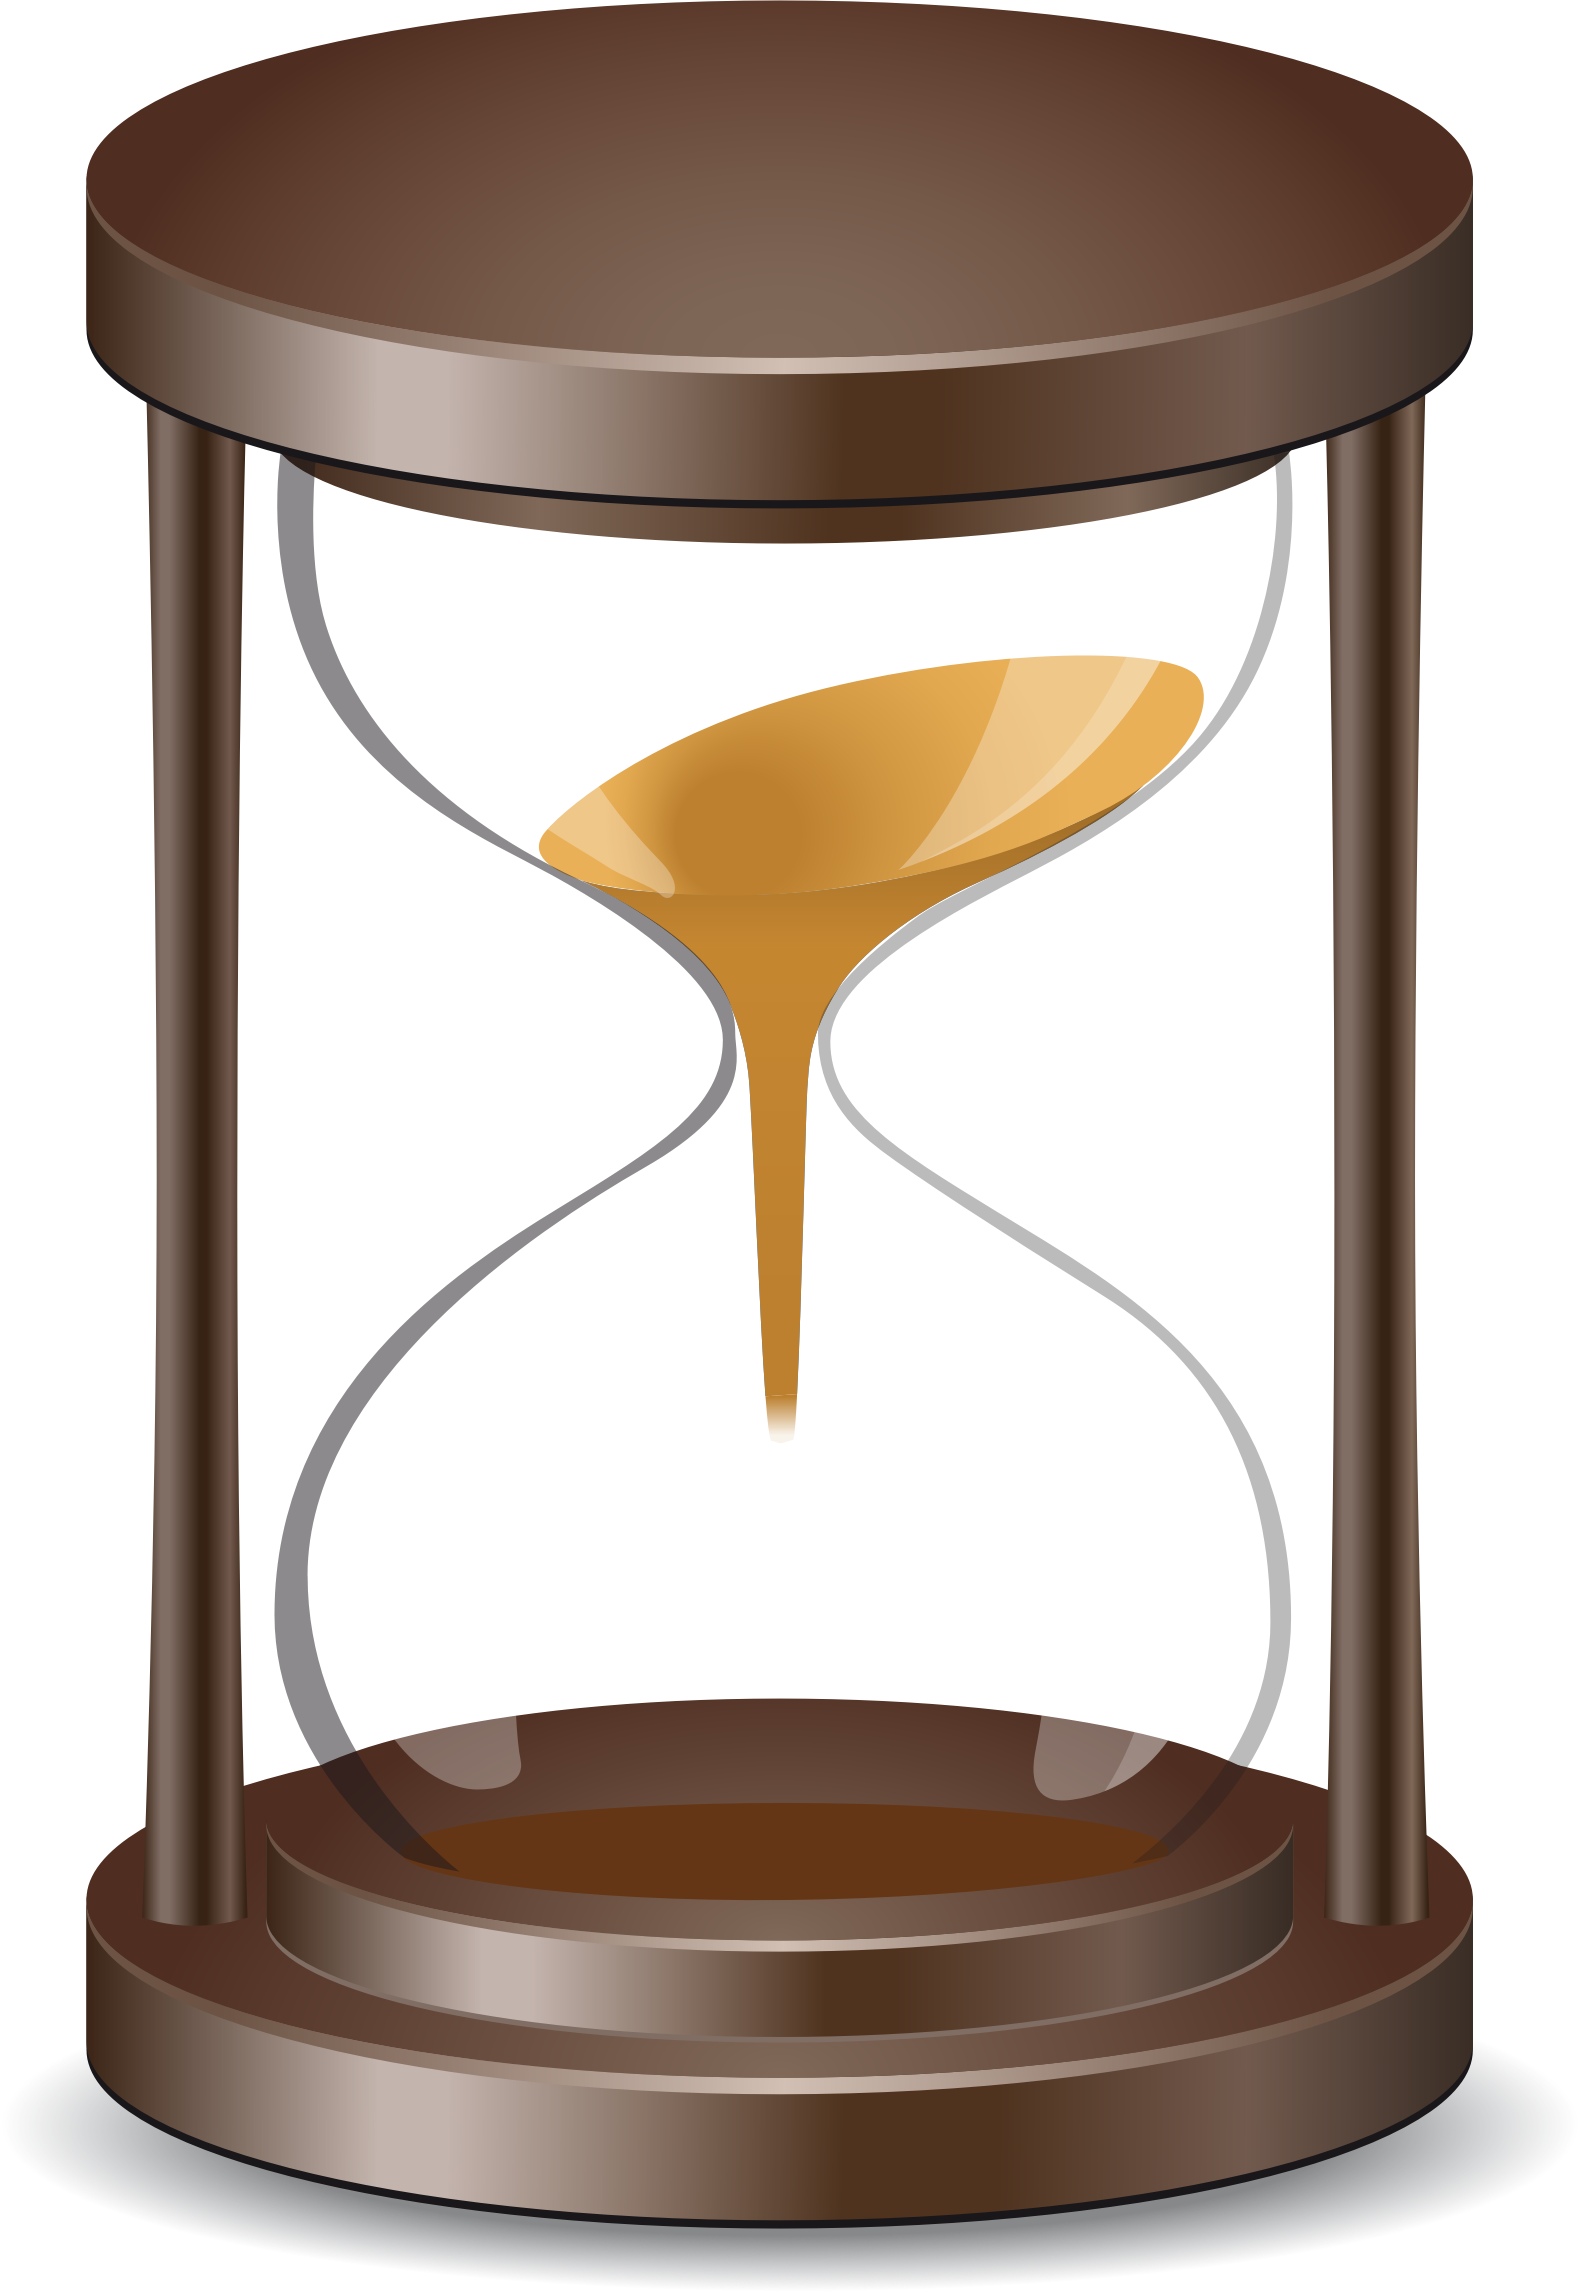 clipart hourglass rh openclipart org hourglass drawing clipart hourglass clip art free